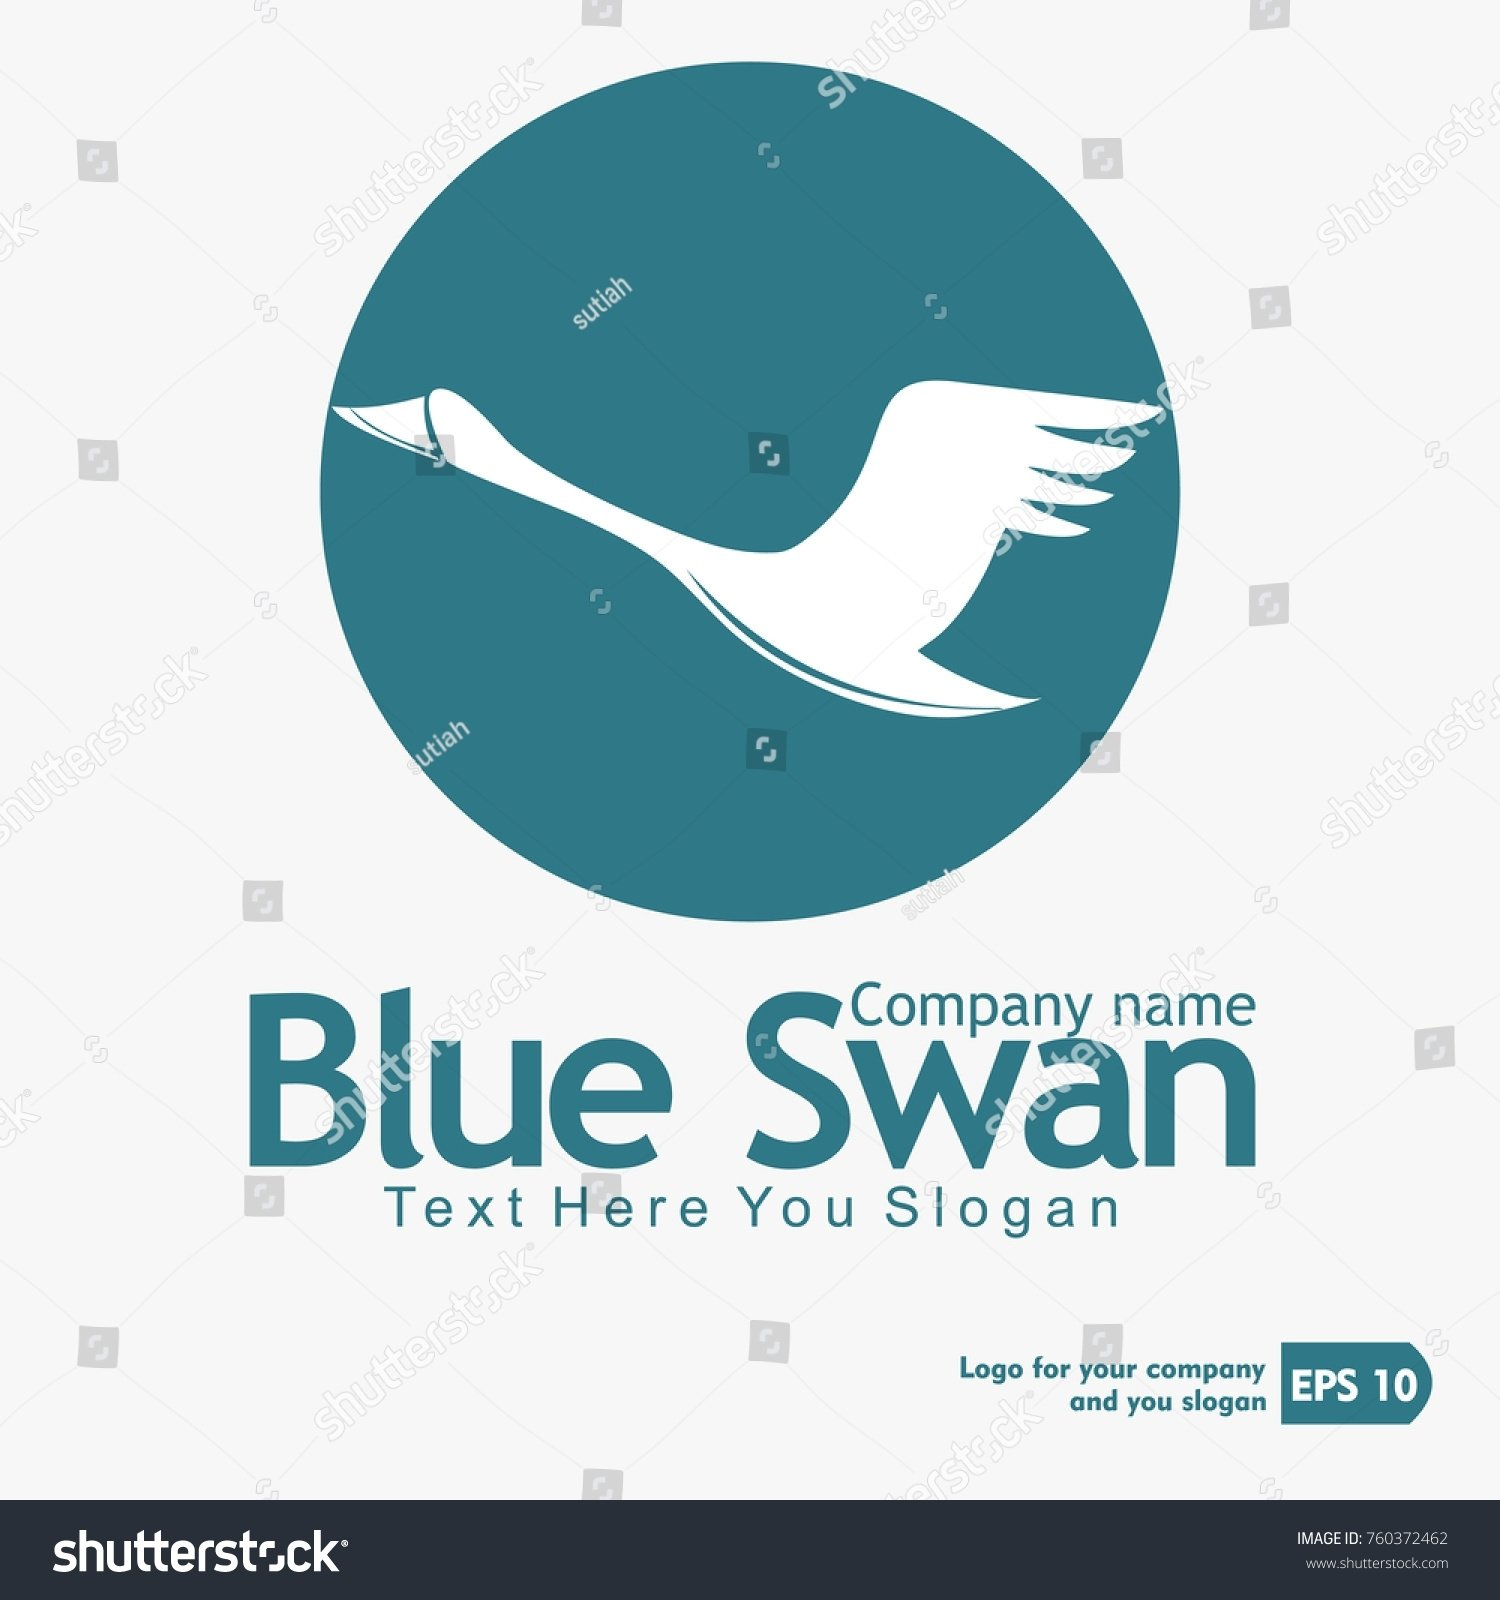 10 Lovable Selling An Idea To A Company blue swan logo design abstract business stock vector 760372462 2021